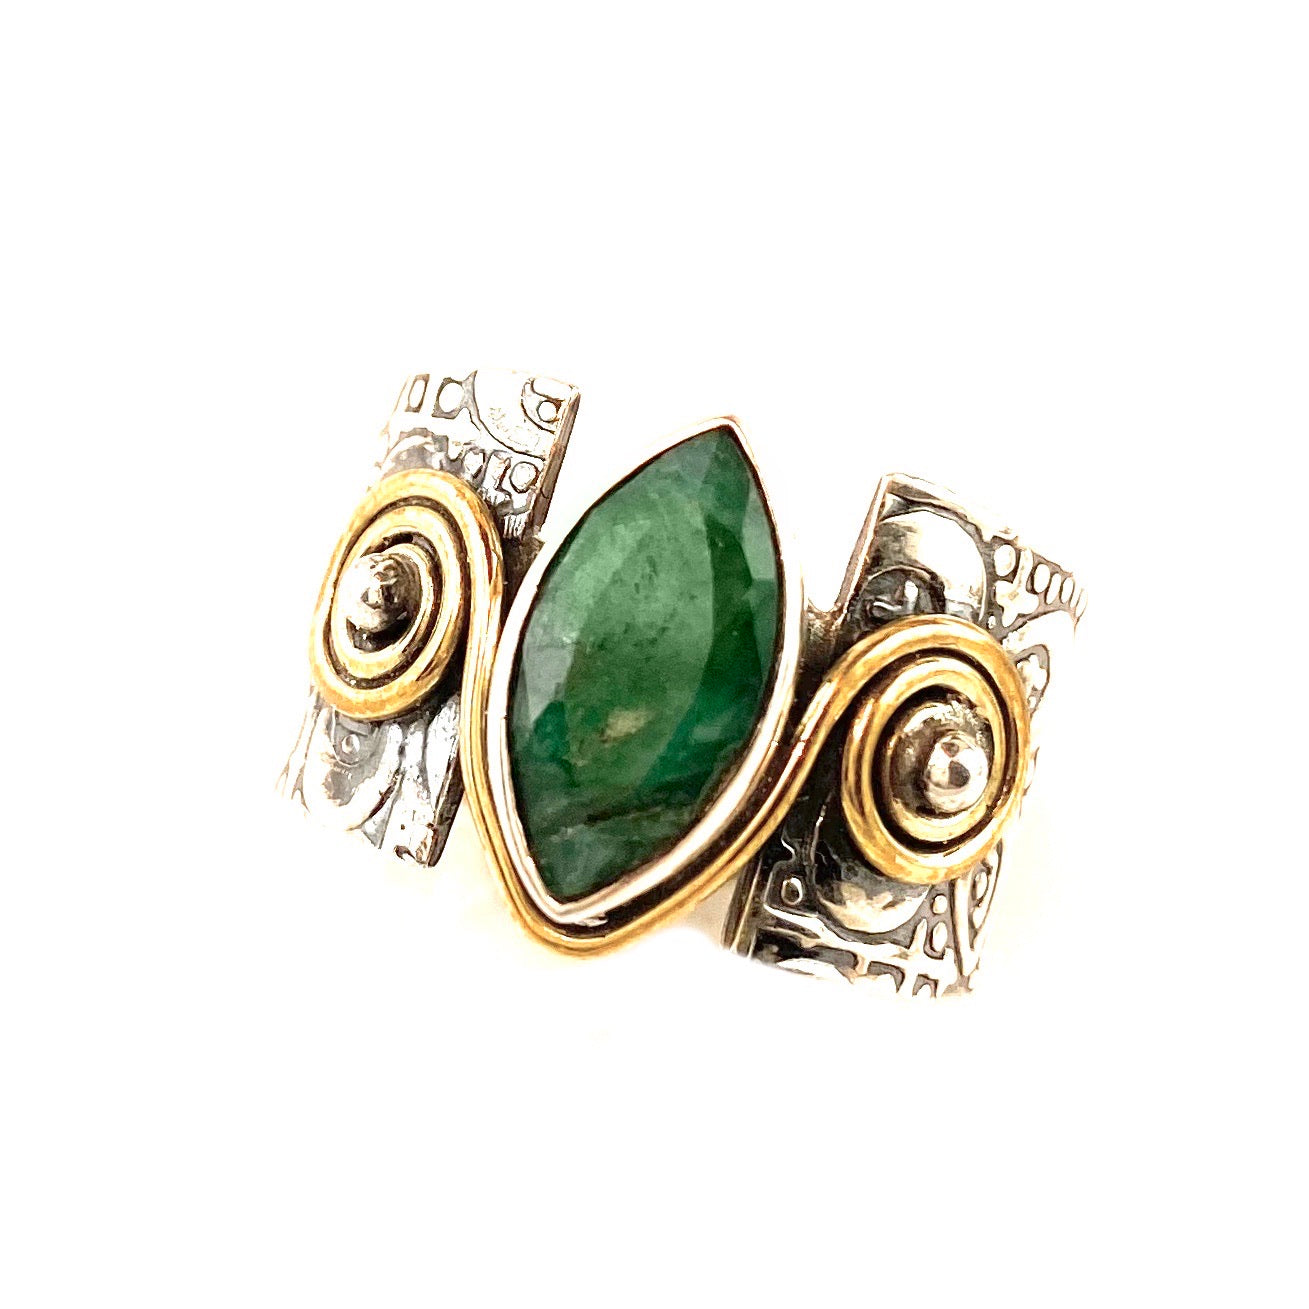 Emerald Sterling Silver Two Tone Band Ring - Keja Designs Jewelry